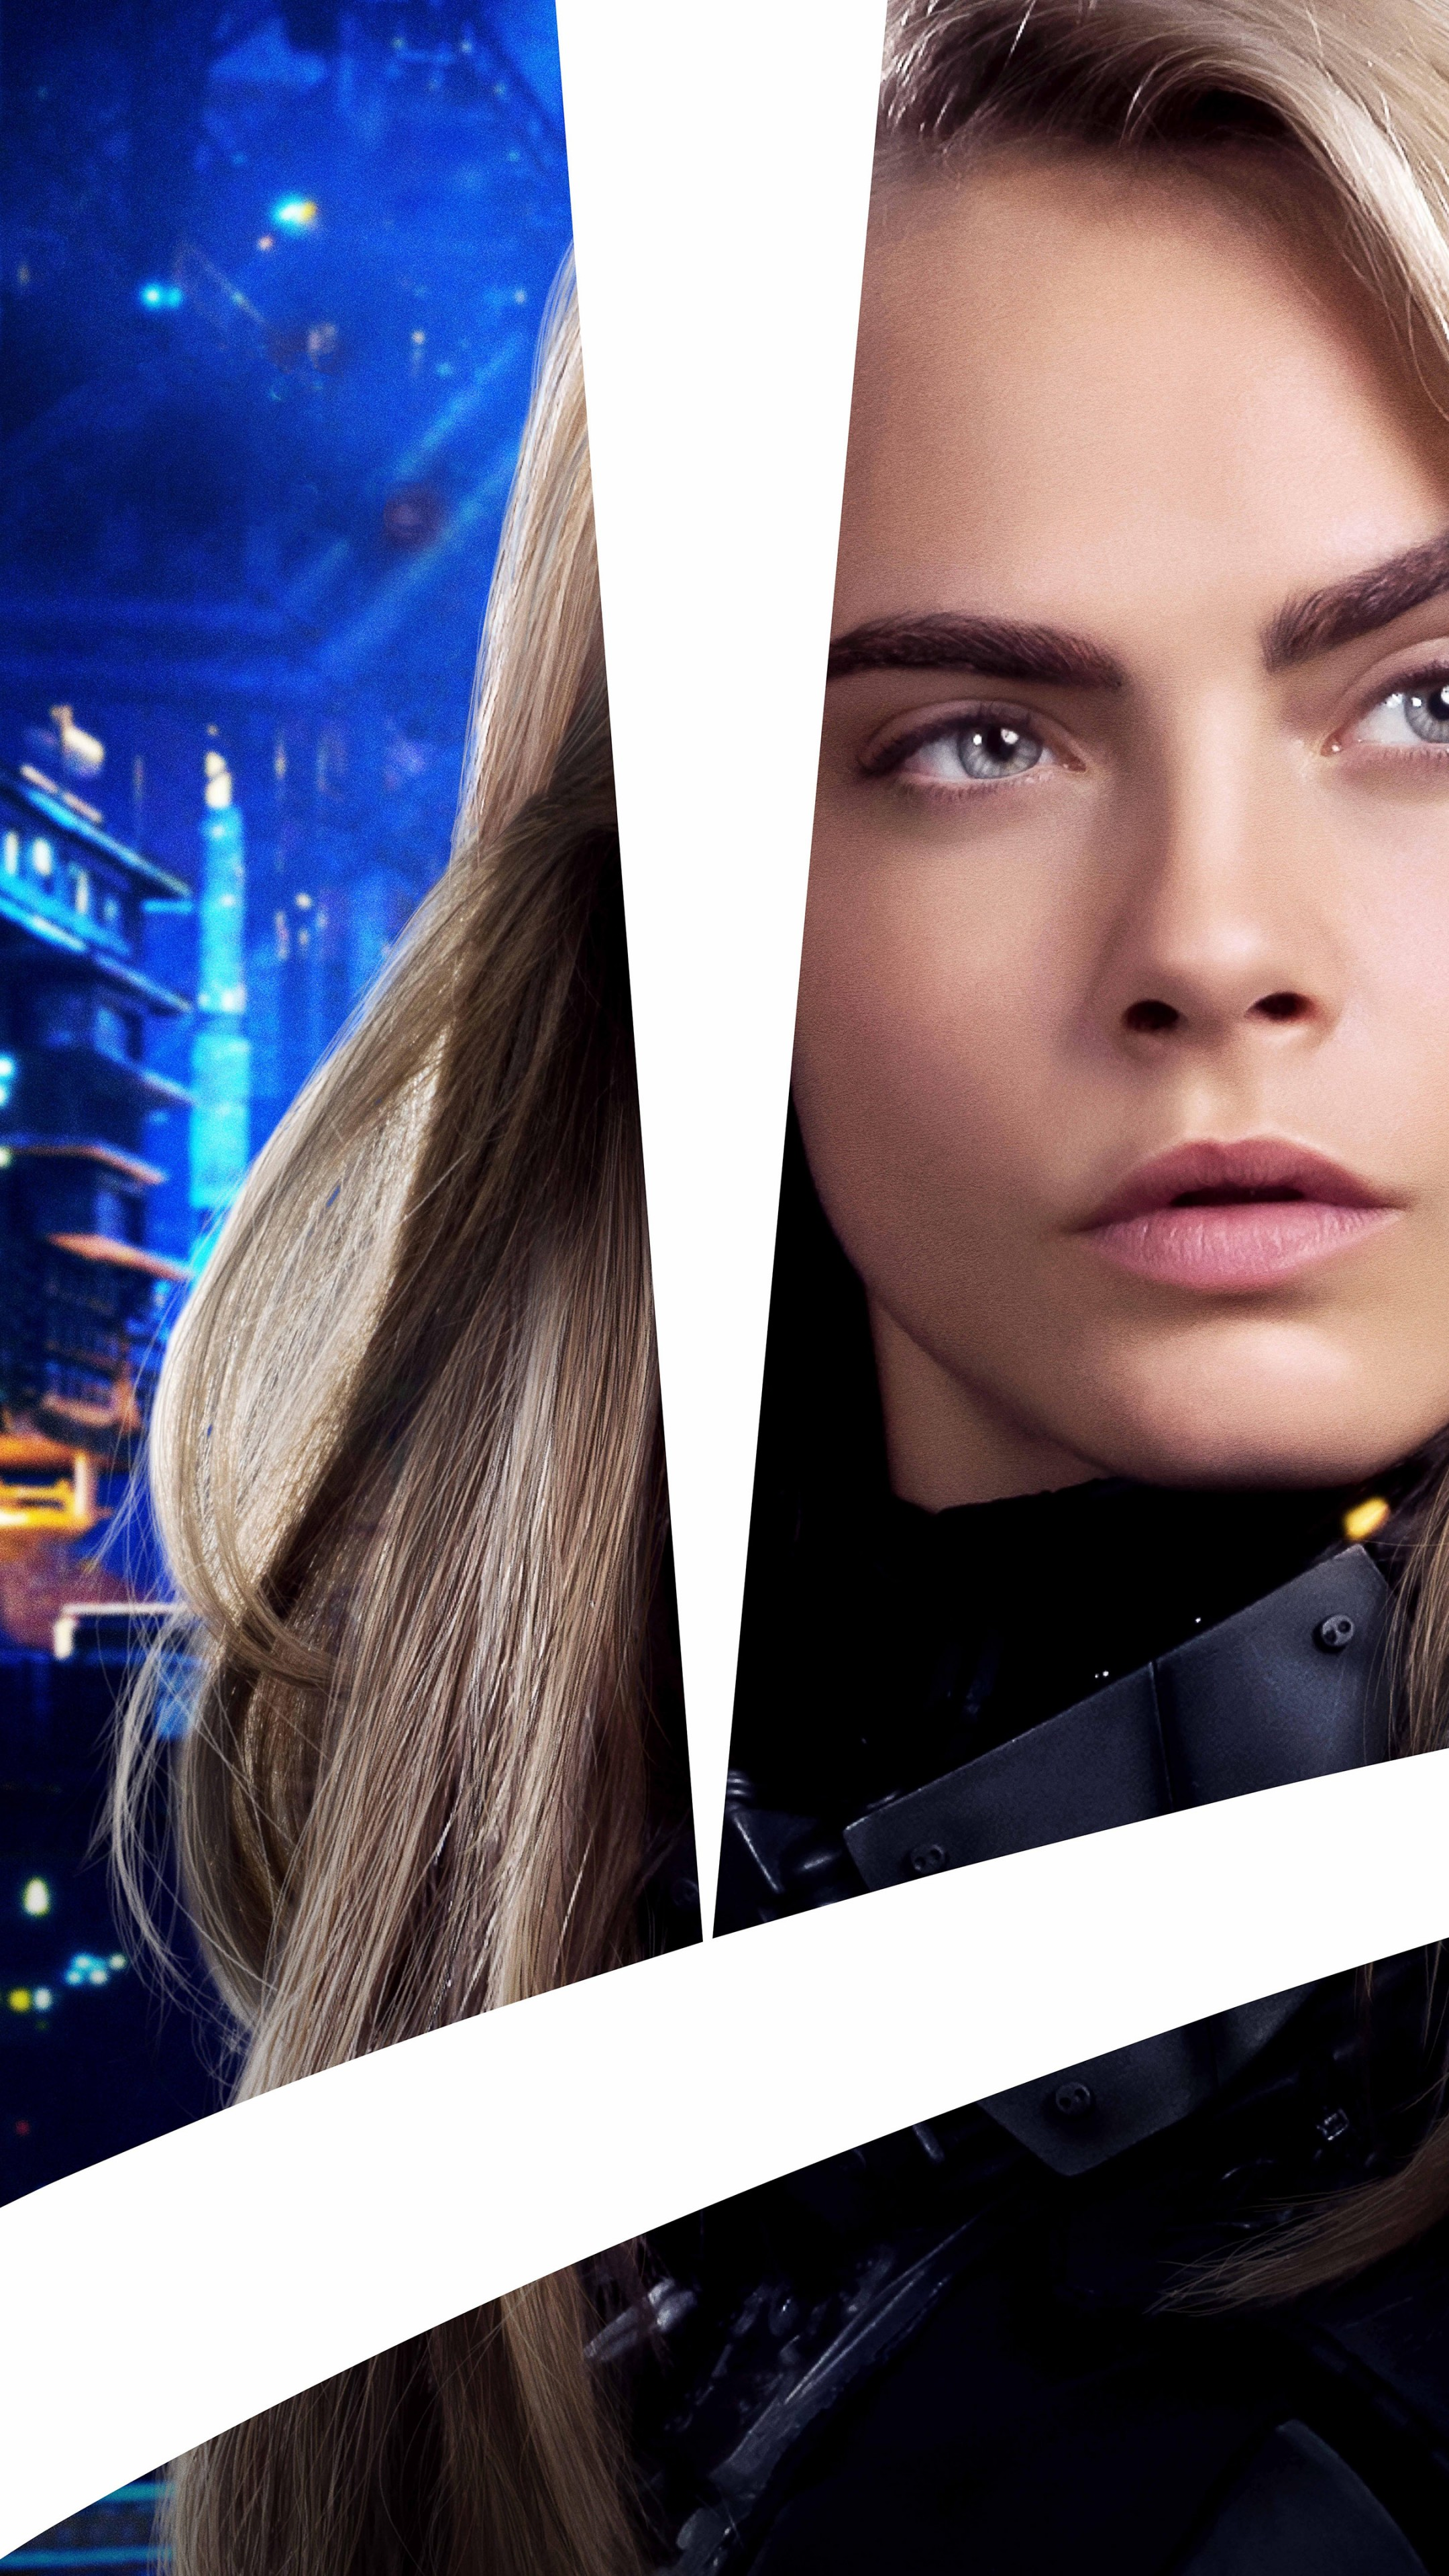 Wallpaper Valerian And The City Of A Thousand Planets 8k Cara